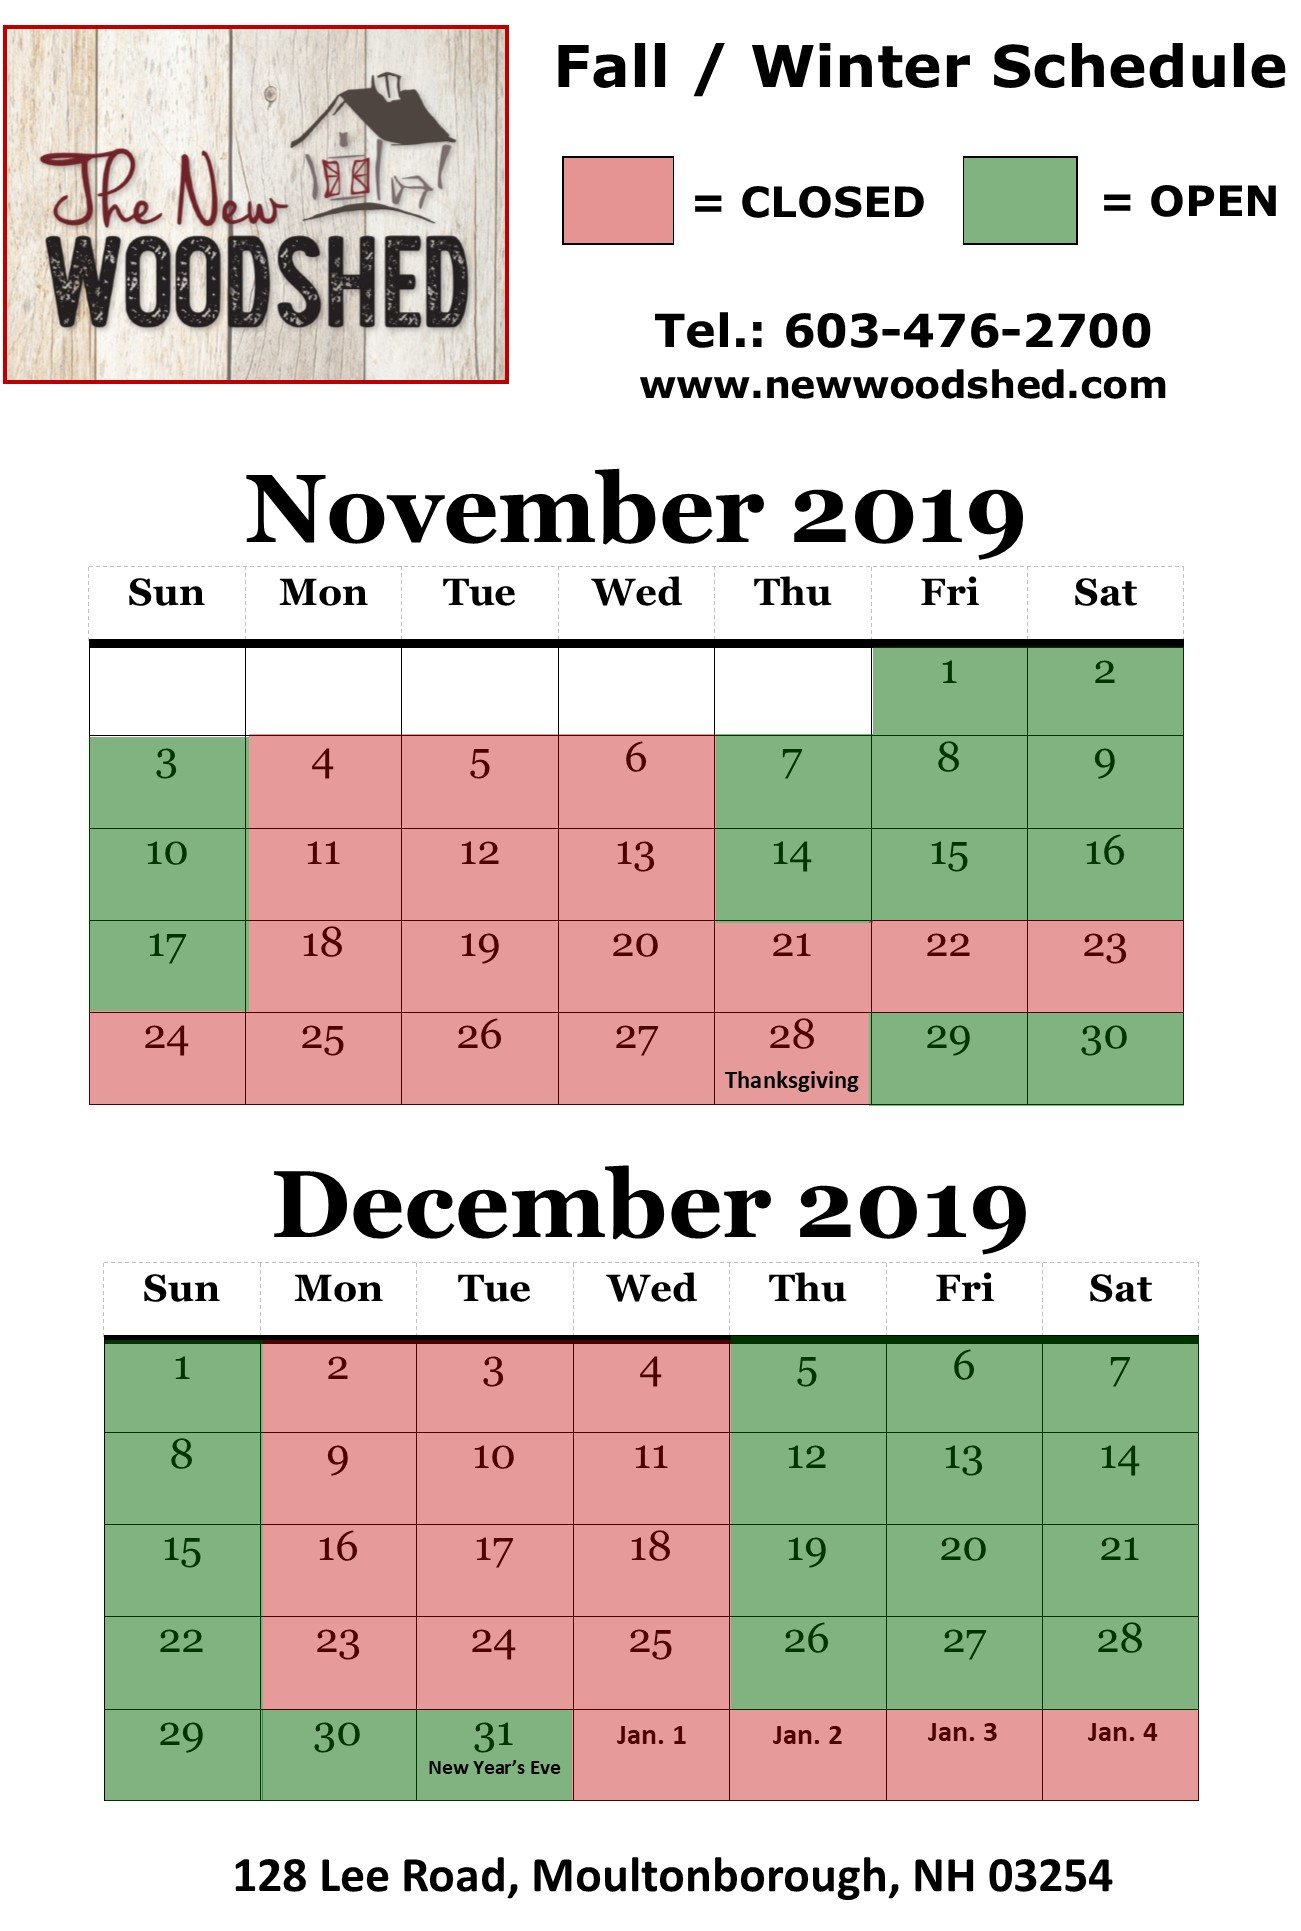 New Wood Shed Hours